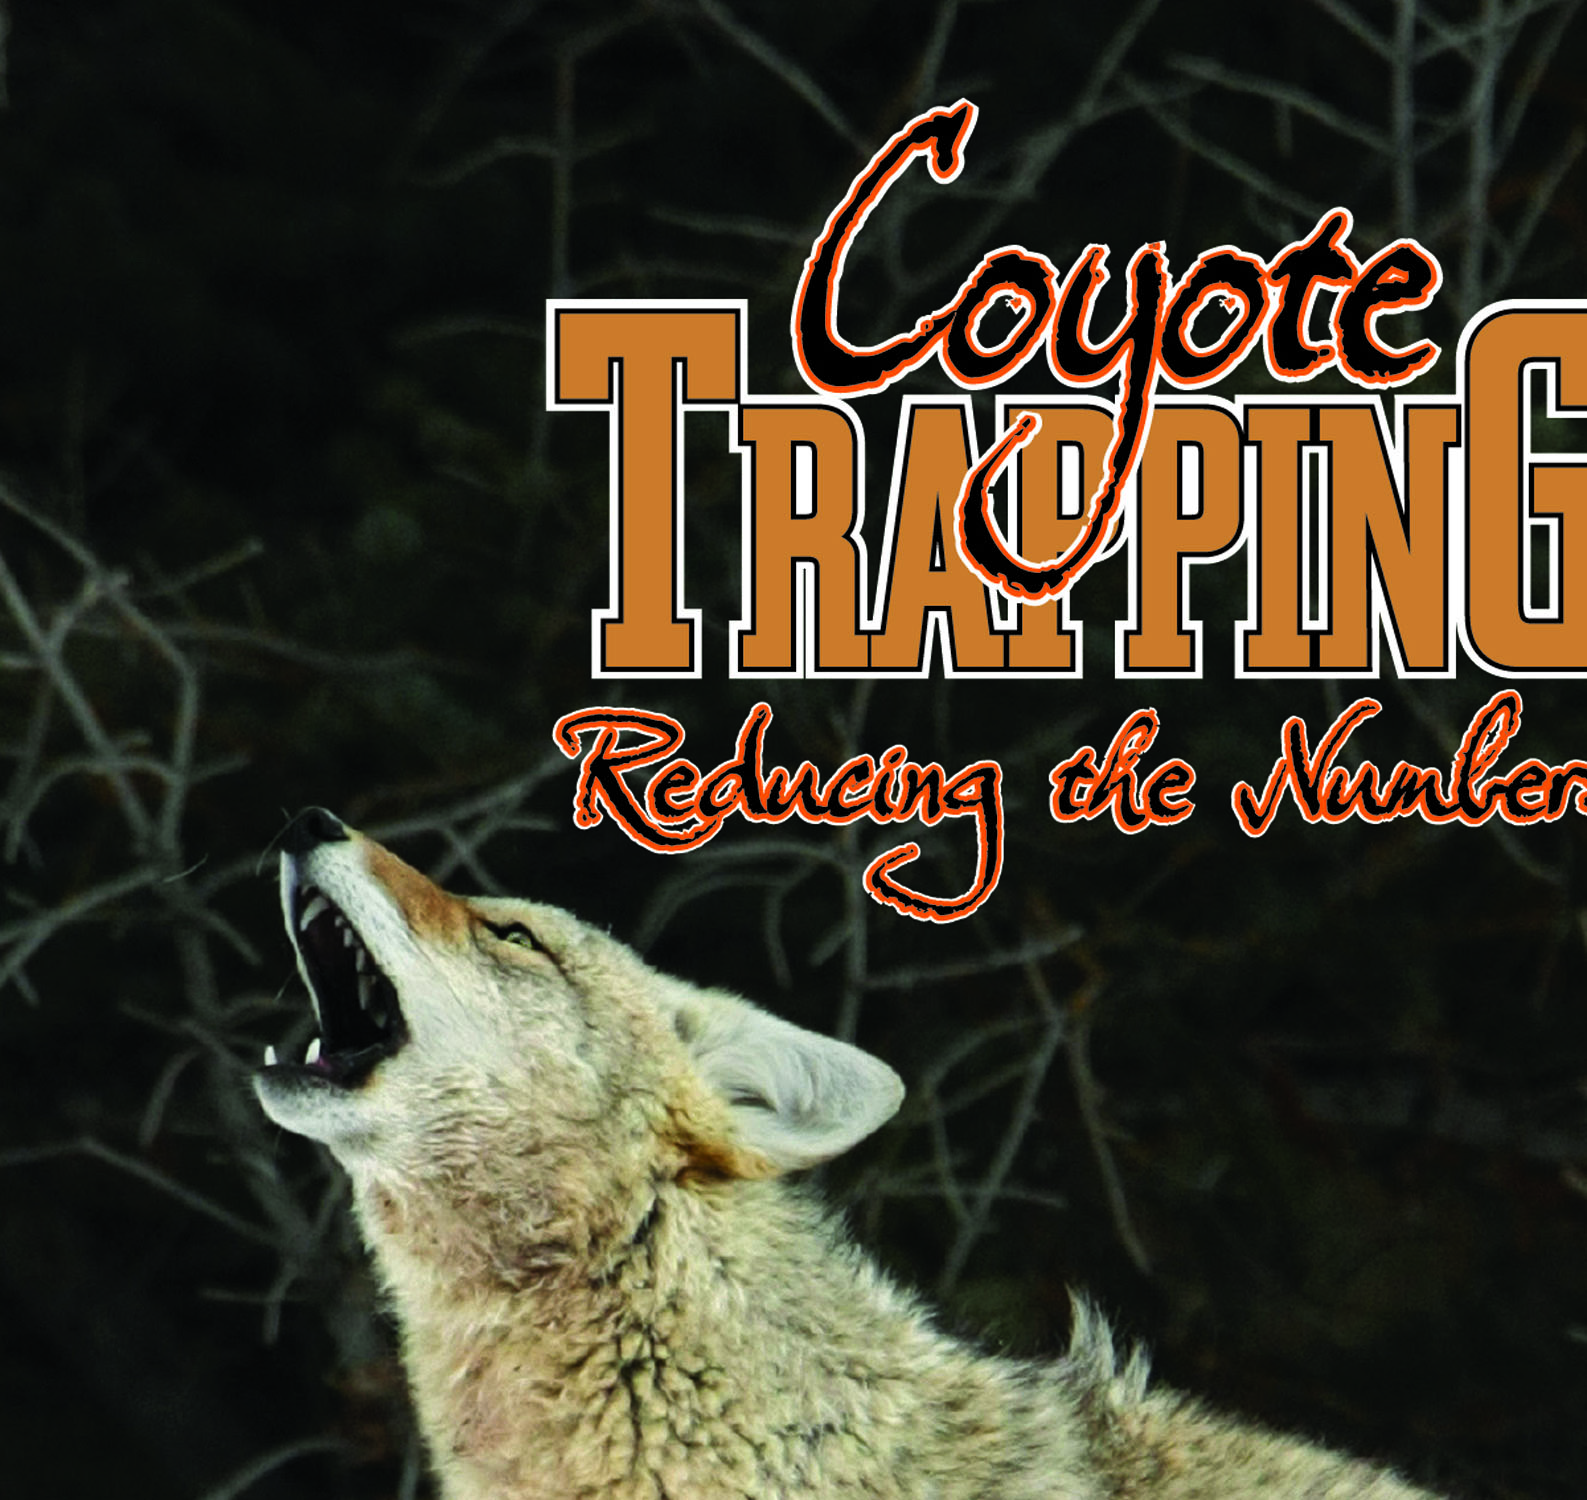 Reducing the Numbers Coyote Trapping - Mark June